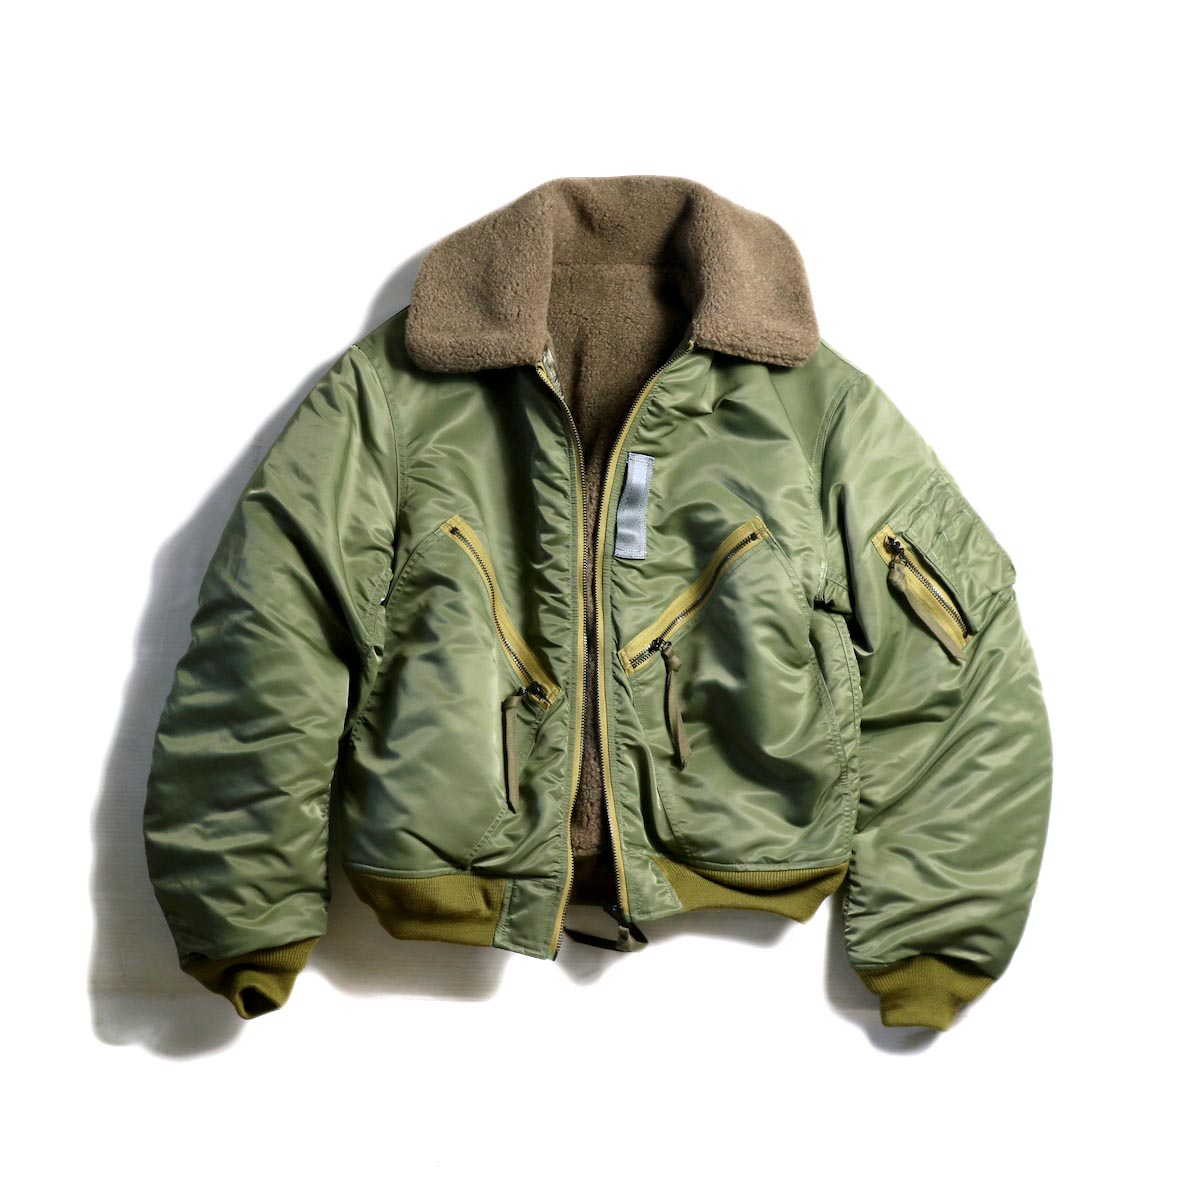 JOHN MASON SMITH / B-15 TEST PILOT JACKET